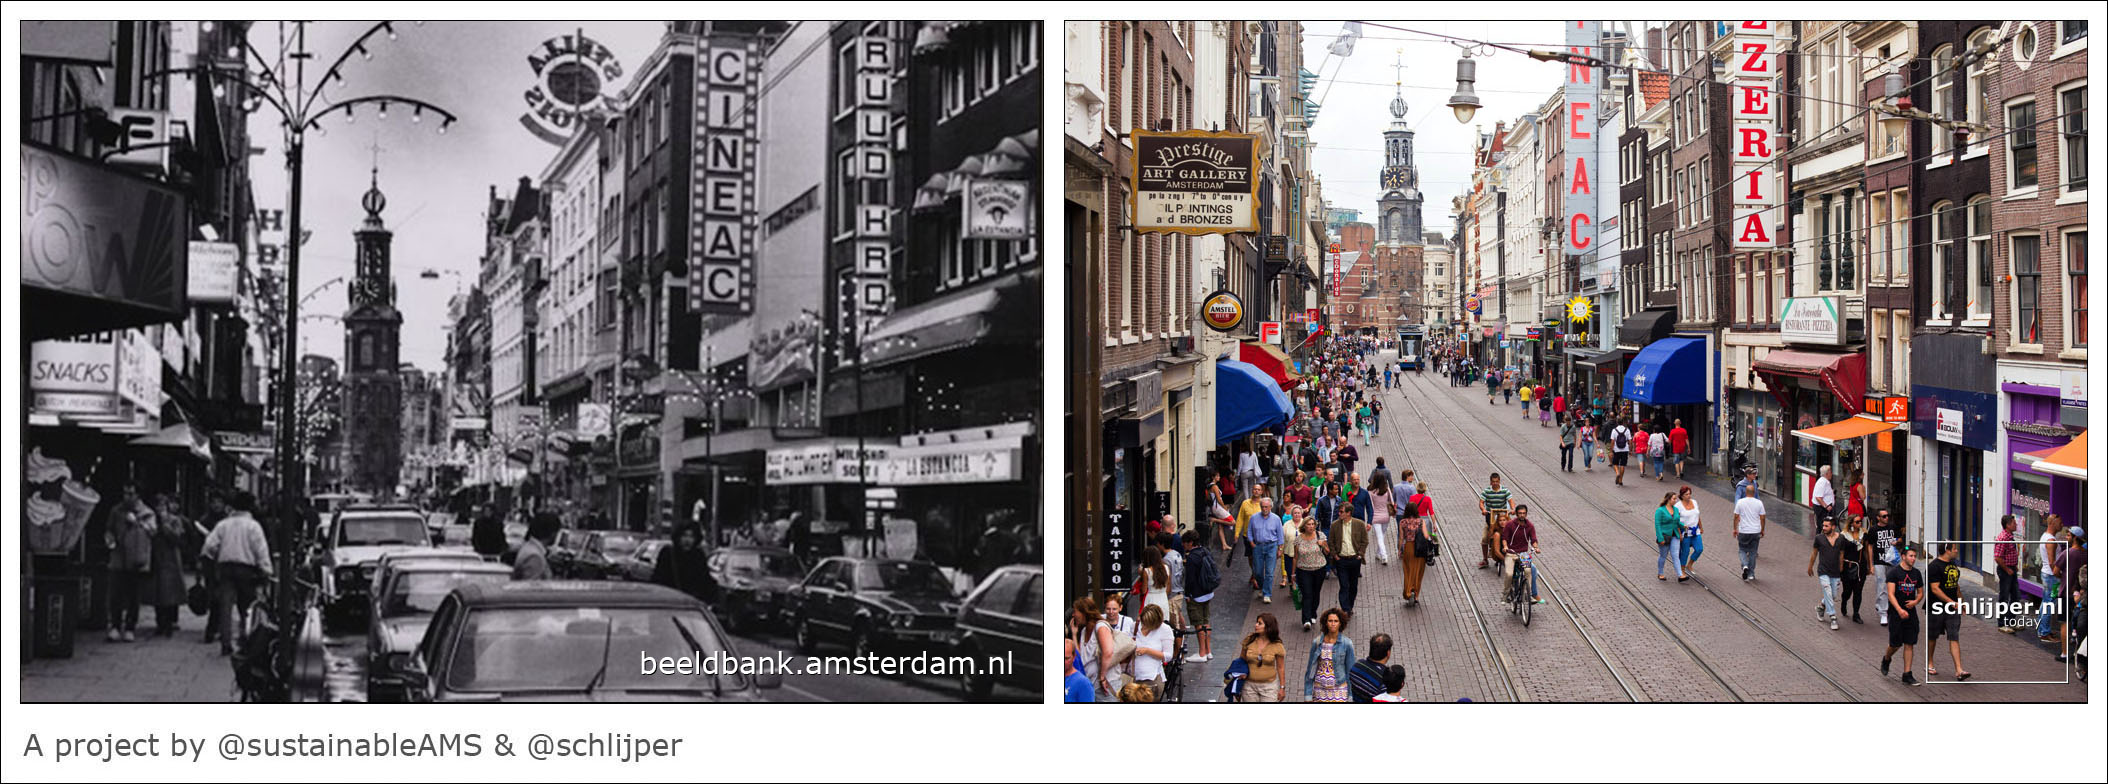 reguliersbreestraat-comparison